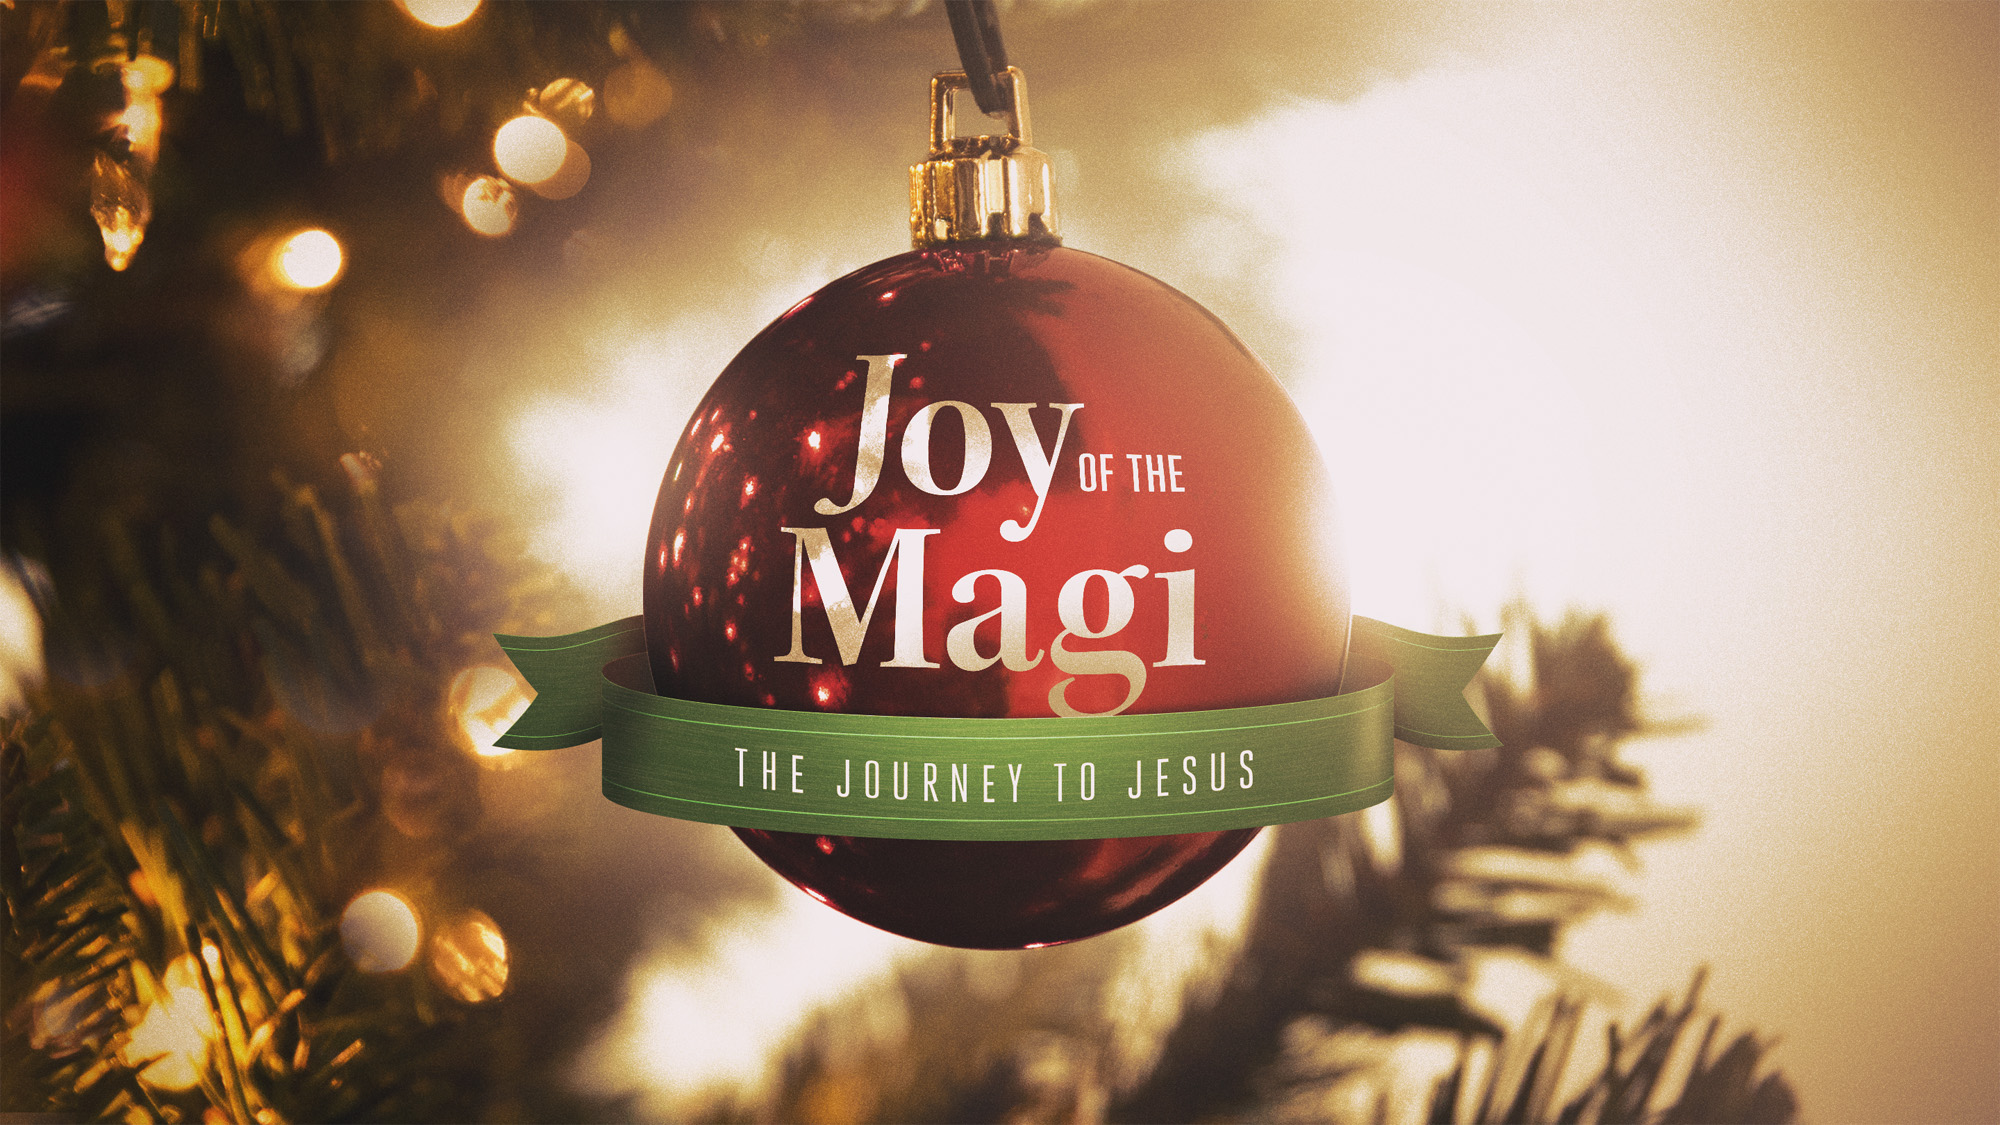 Joy-Of-The-Magi_WIDE-TITLE-1